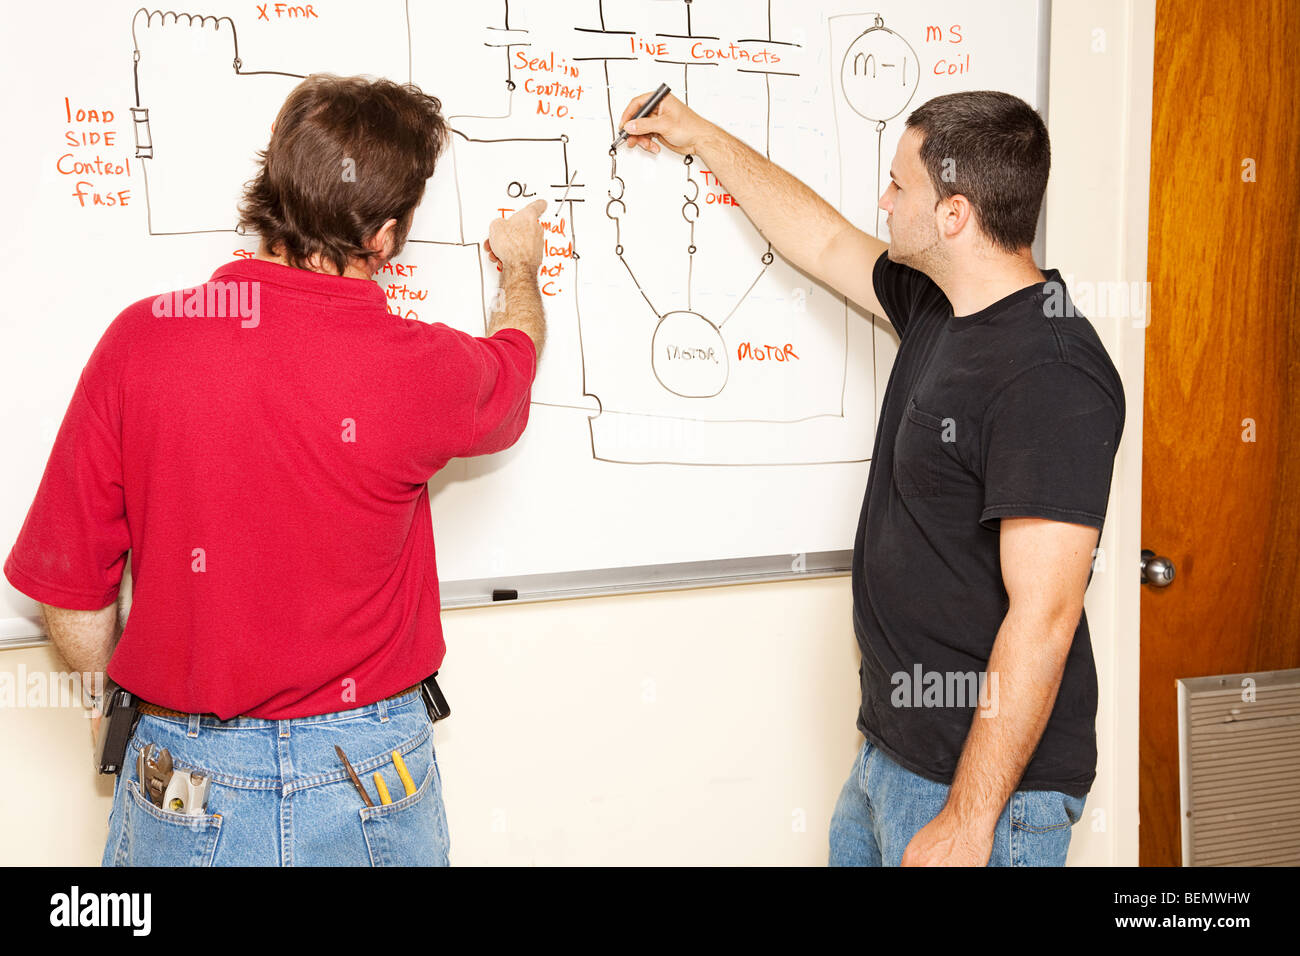 Electrical Circuit Diagram Stock Photos Schematic Diagrams Engineer Wiring And Engineering Student Learns How To A Image